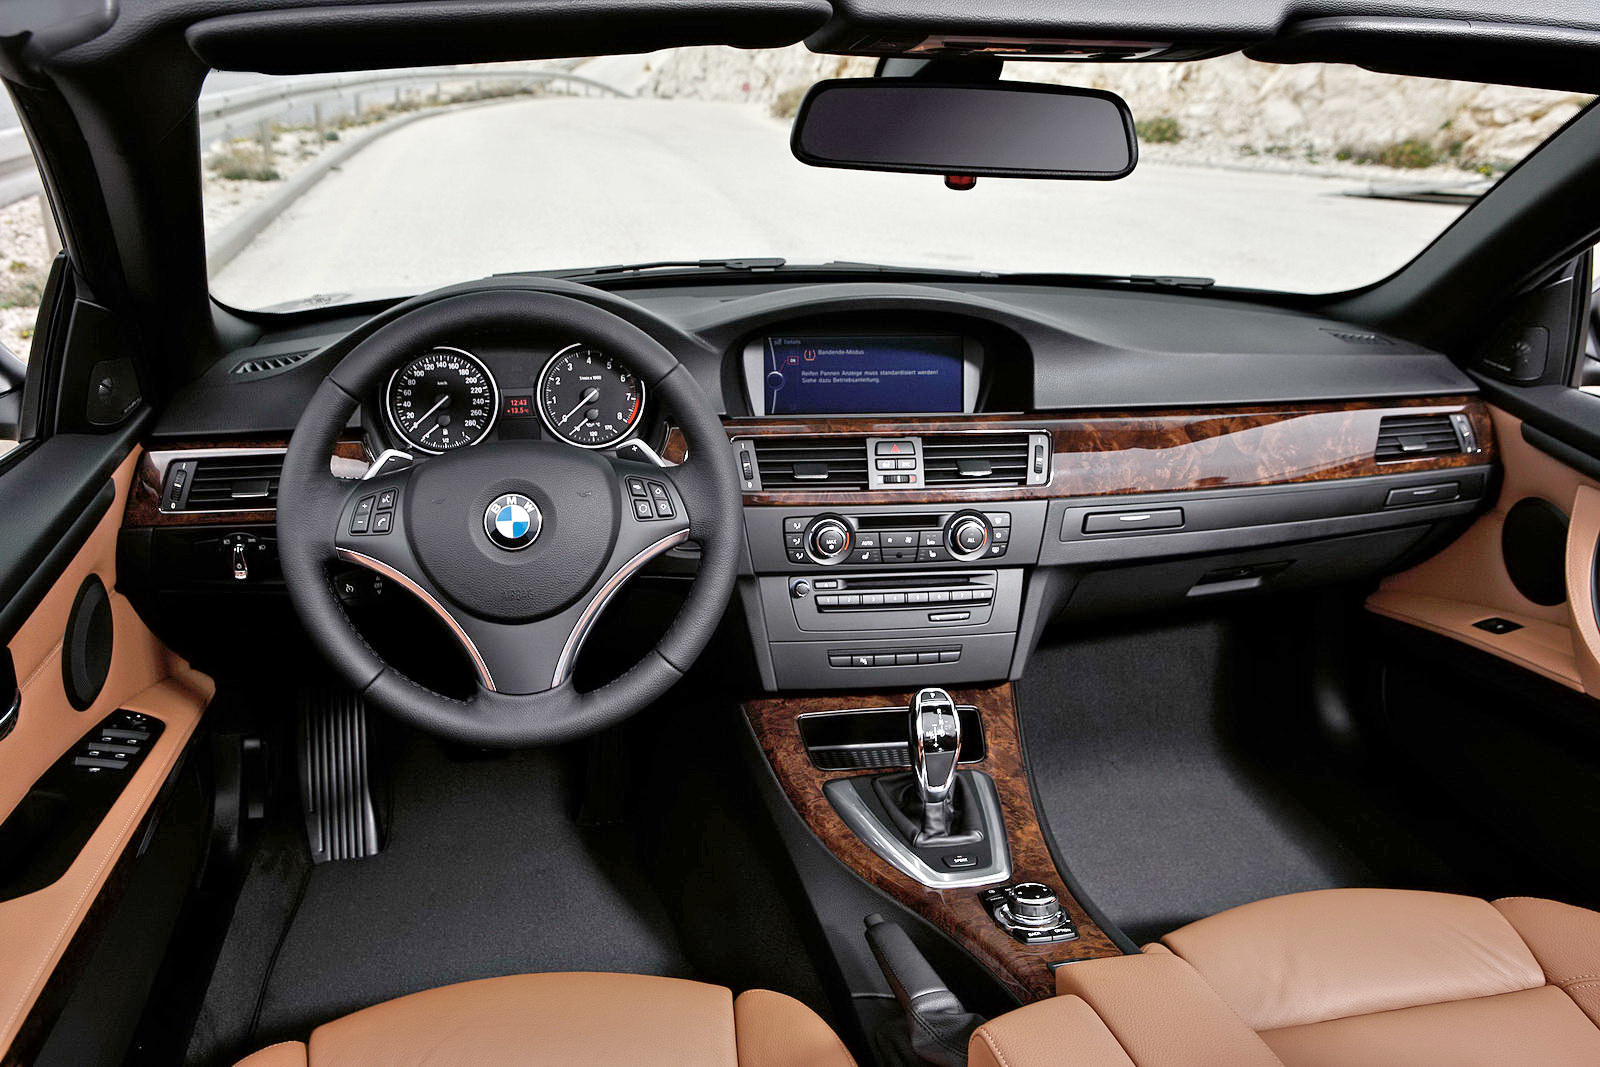 2011 Bmw 3 Series 328i Vin Number Search Autodetective